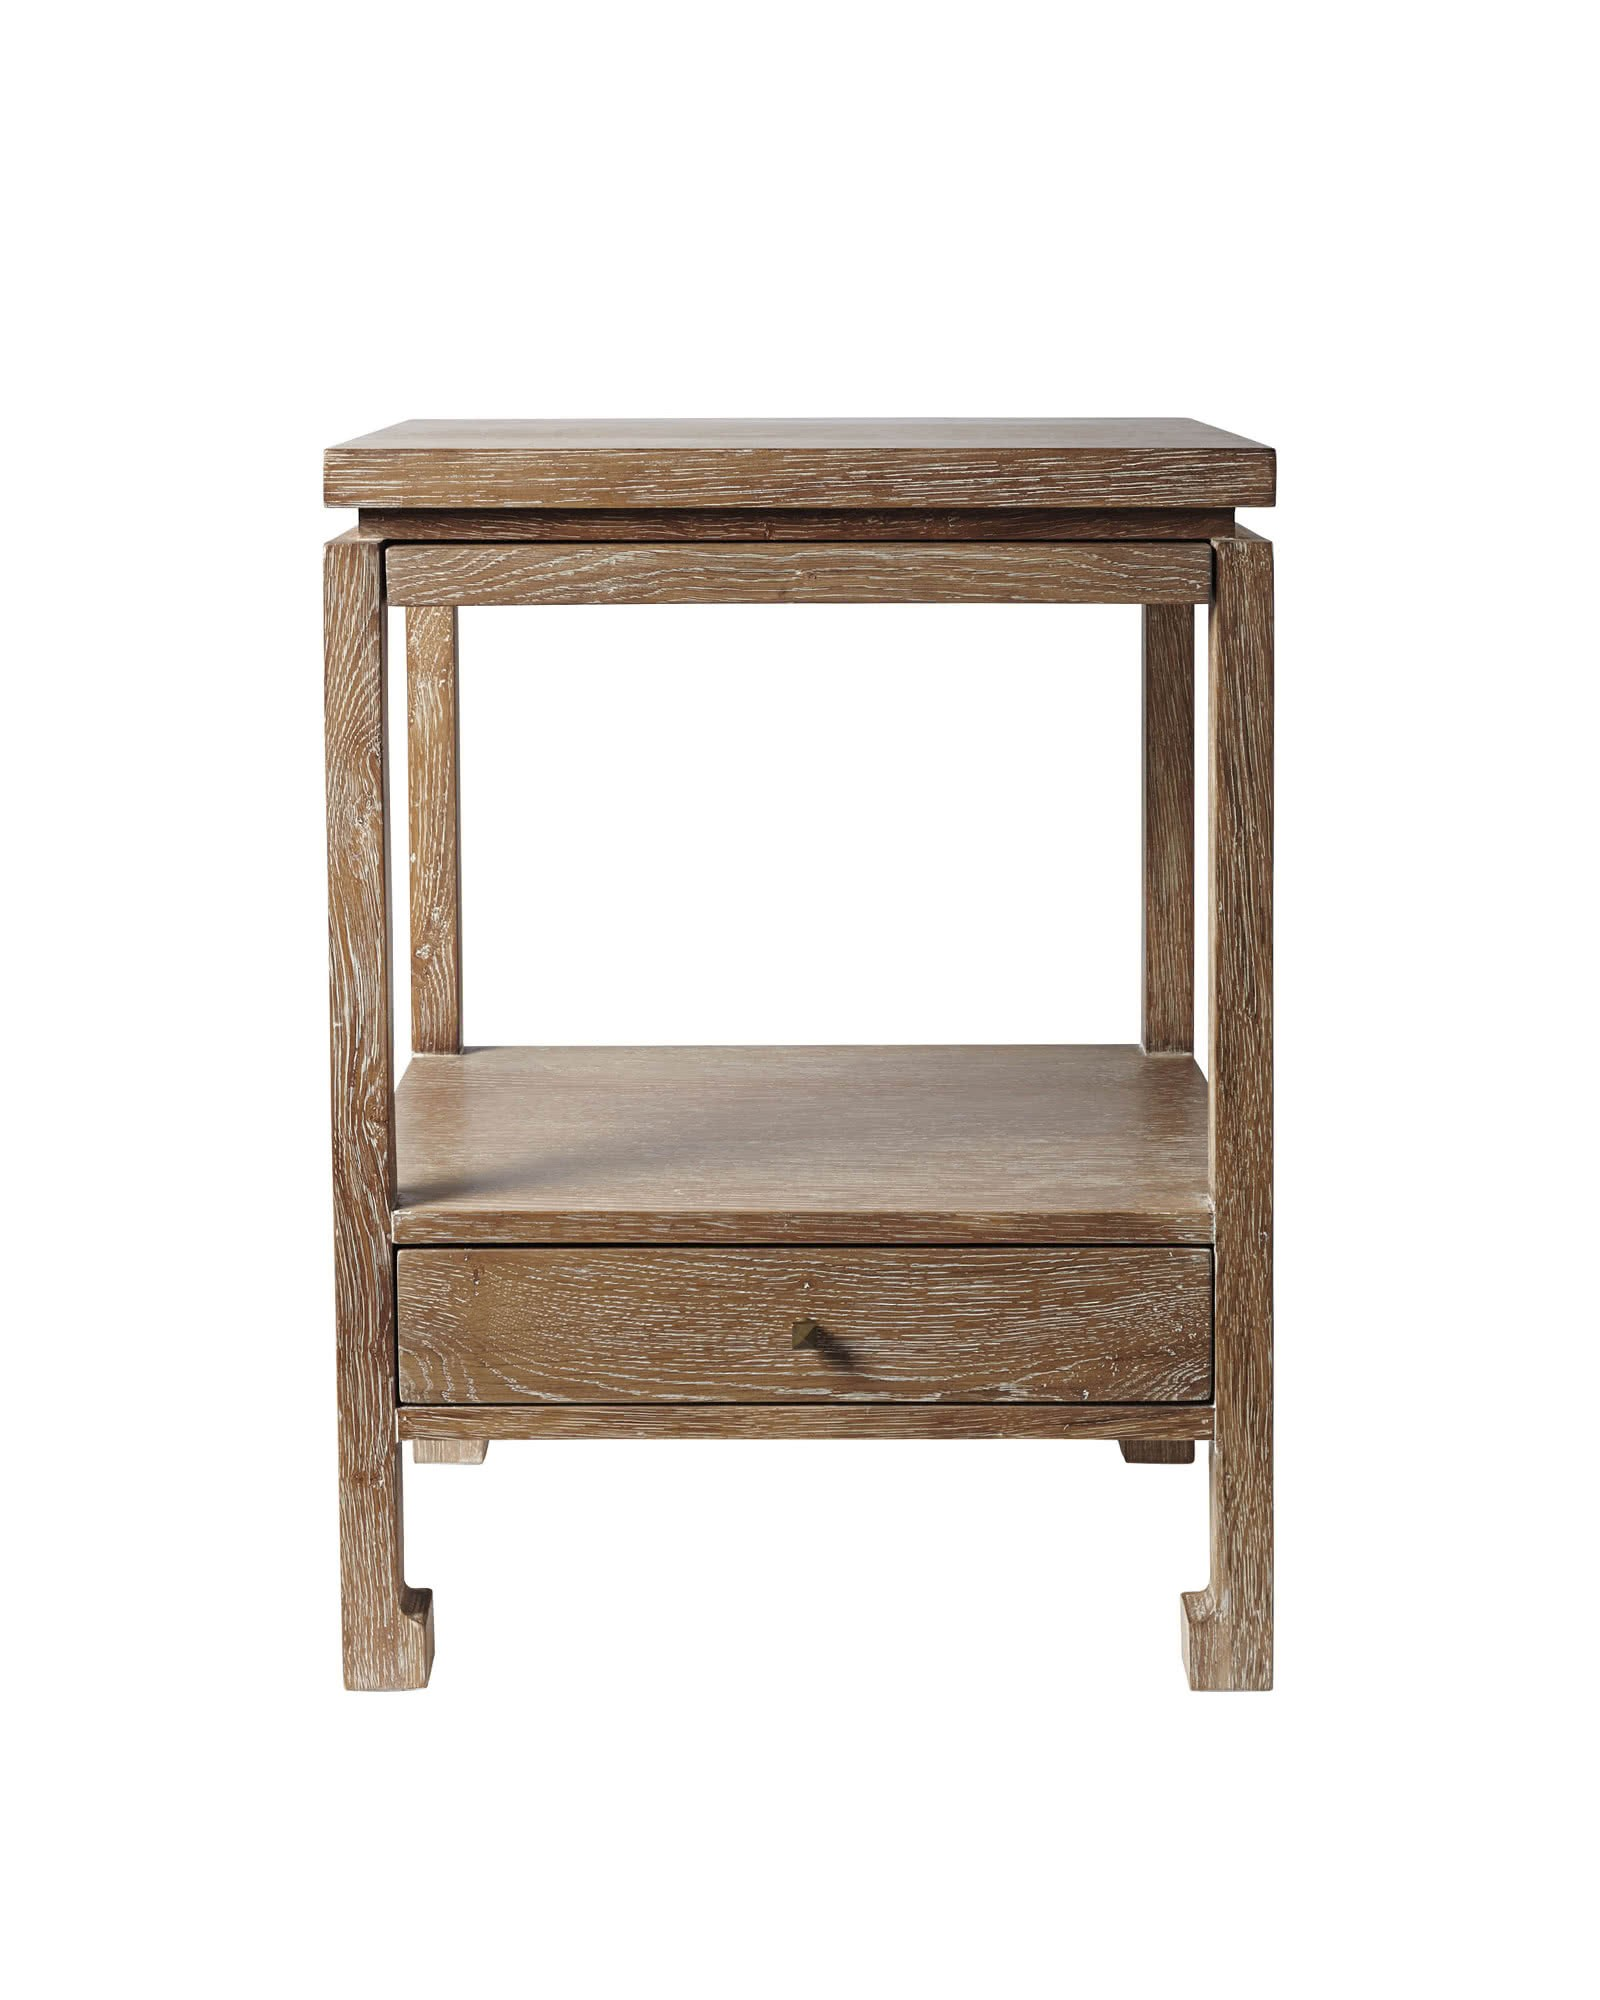 Side occasional lamp accent end tables whats the difference a rectangular table to be at least 14 in width for a lamp that i have done but i would not do a lamp shade larger than 14 at its widest point geotapseo Choice Image